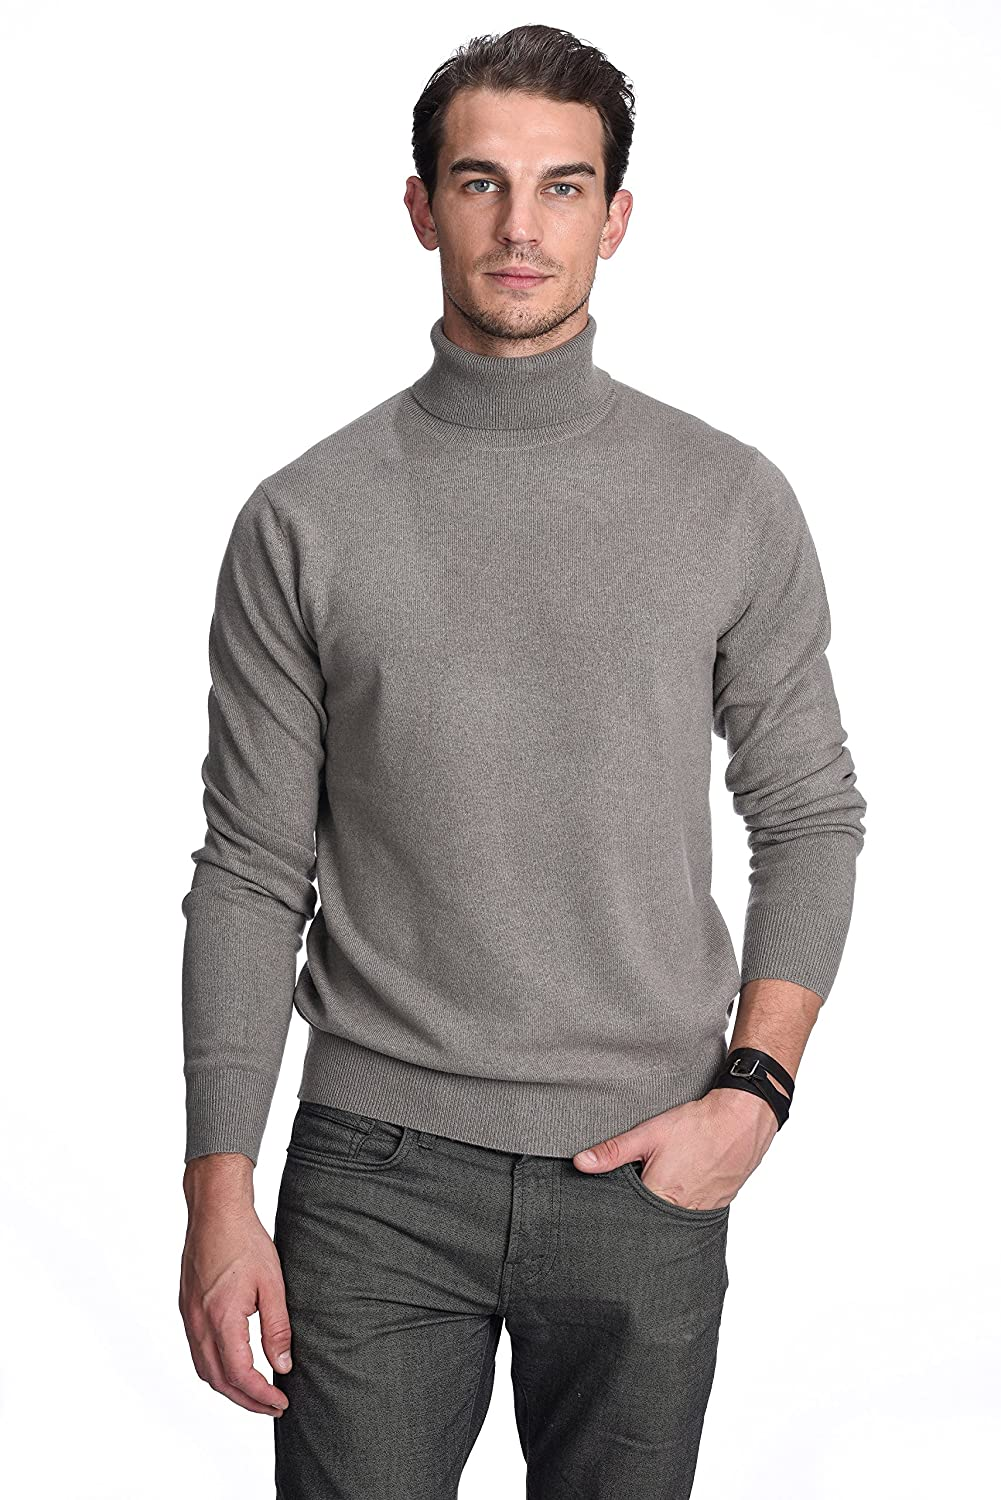 State Cashmere Men's 100% Pure Cashmere Turtleneck Long Sleeve Pullover Sweater ST3614